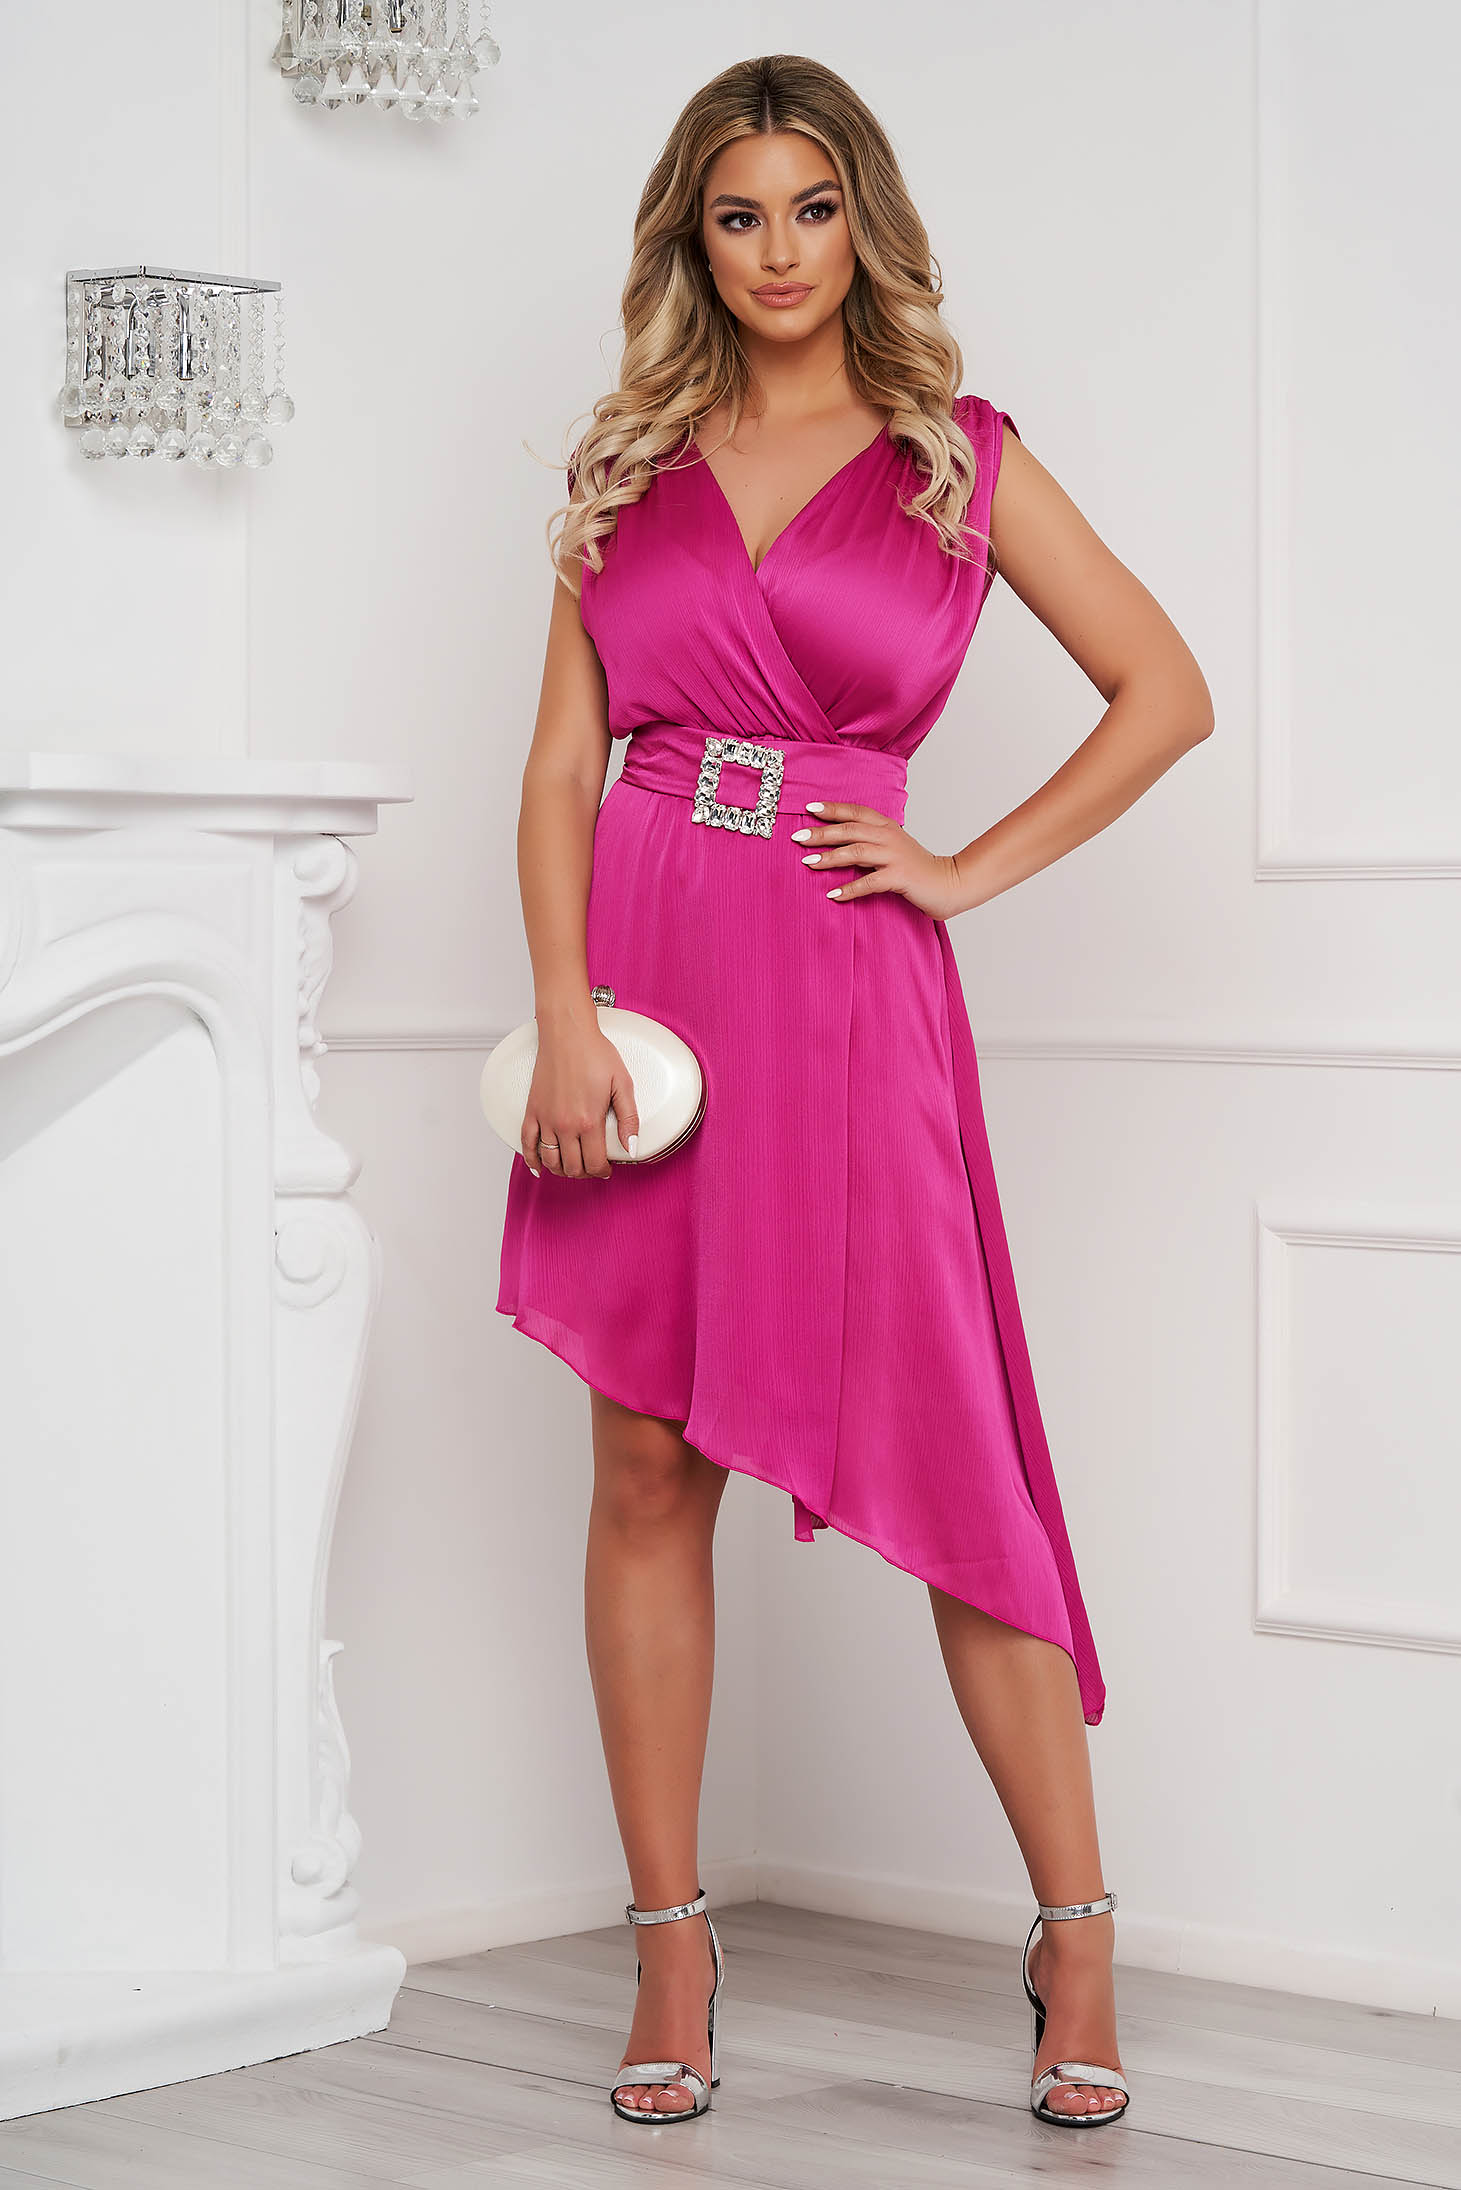 Fuchsia dress elegant asymmetrical cloche voile fabric allure of satin accessorized with tied waistband